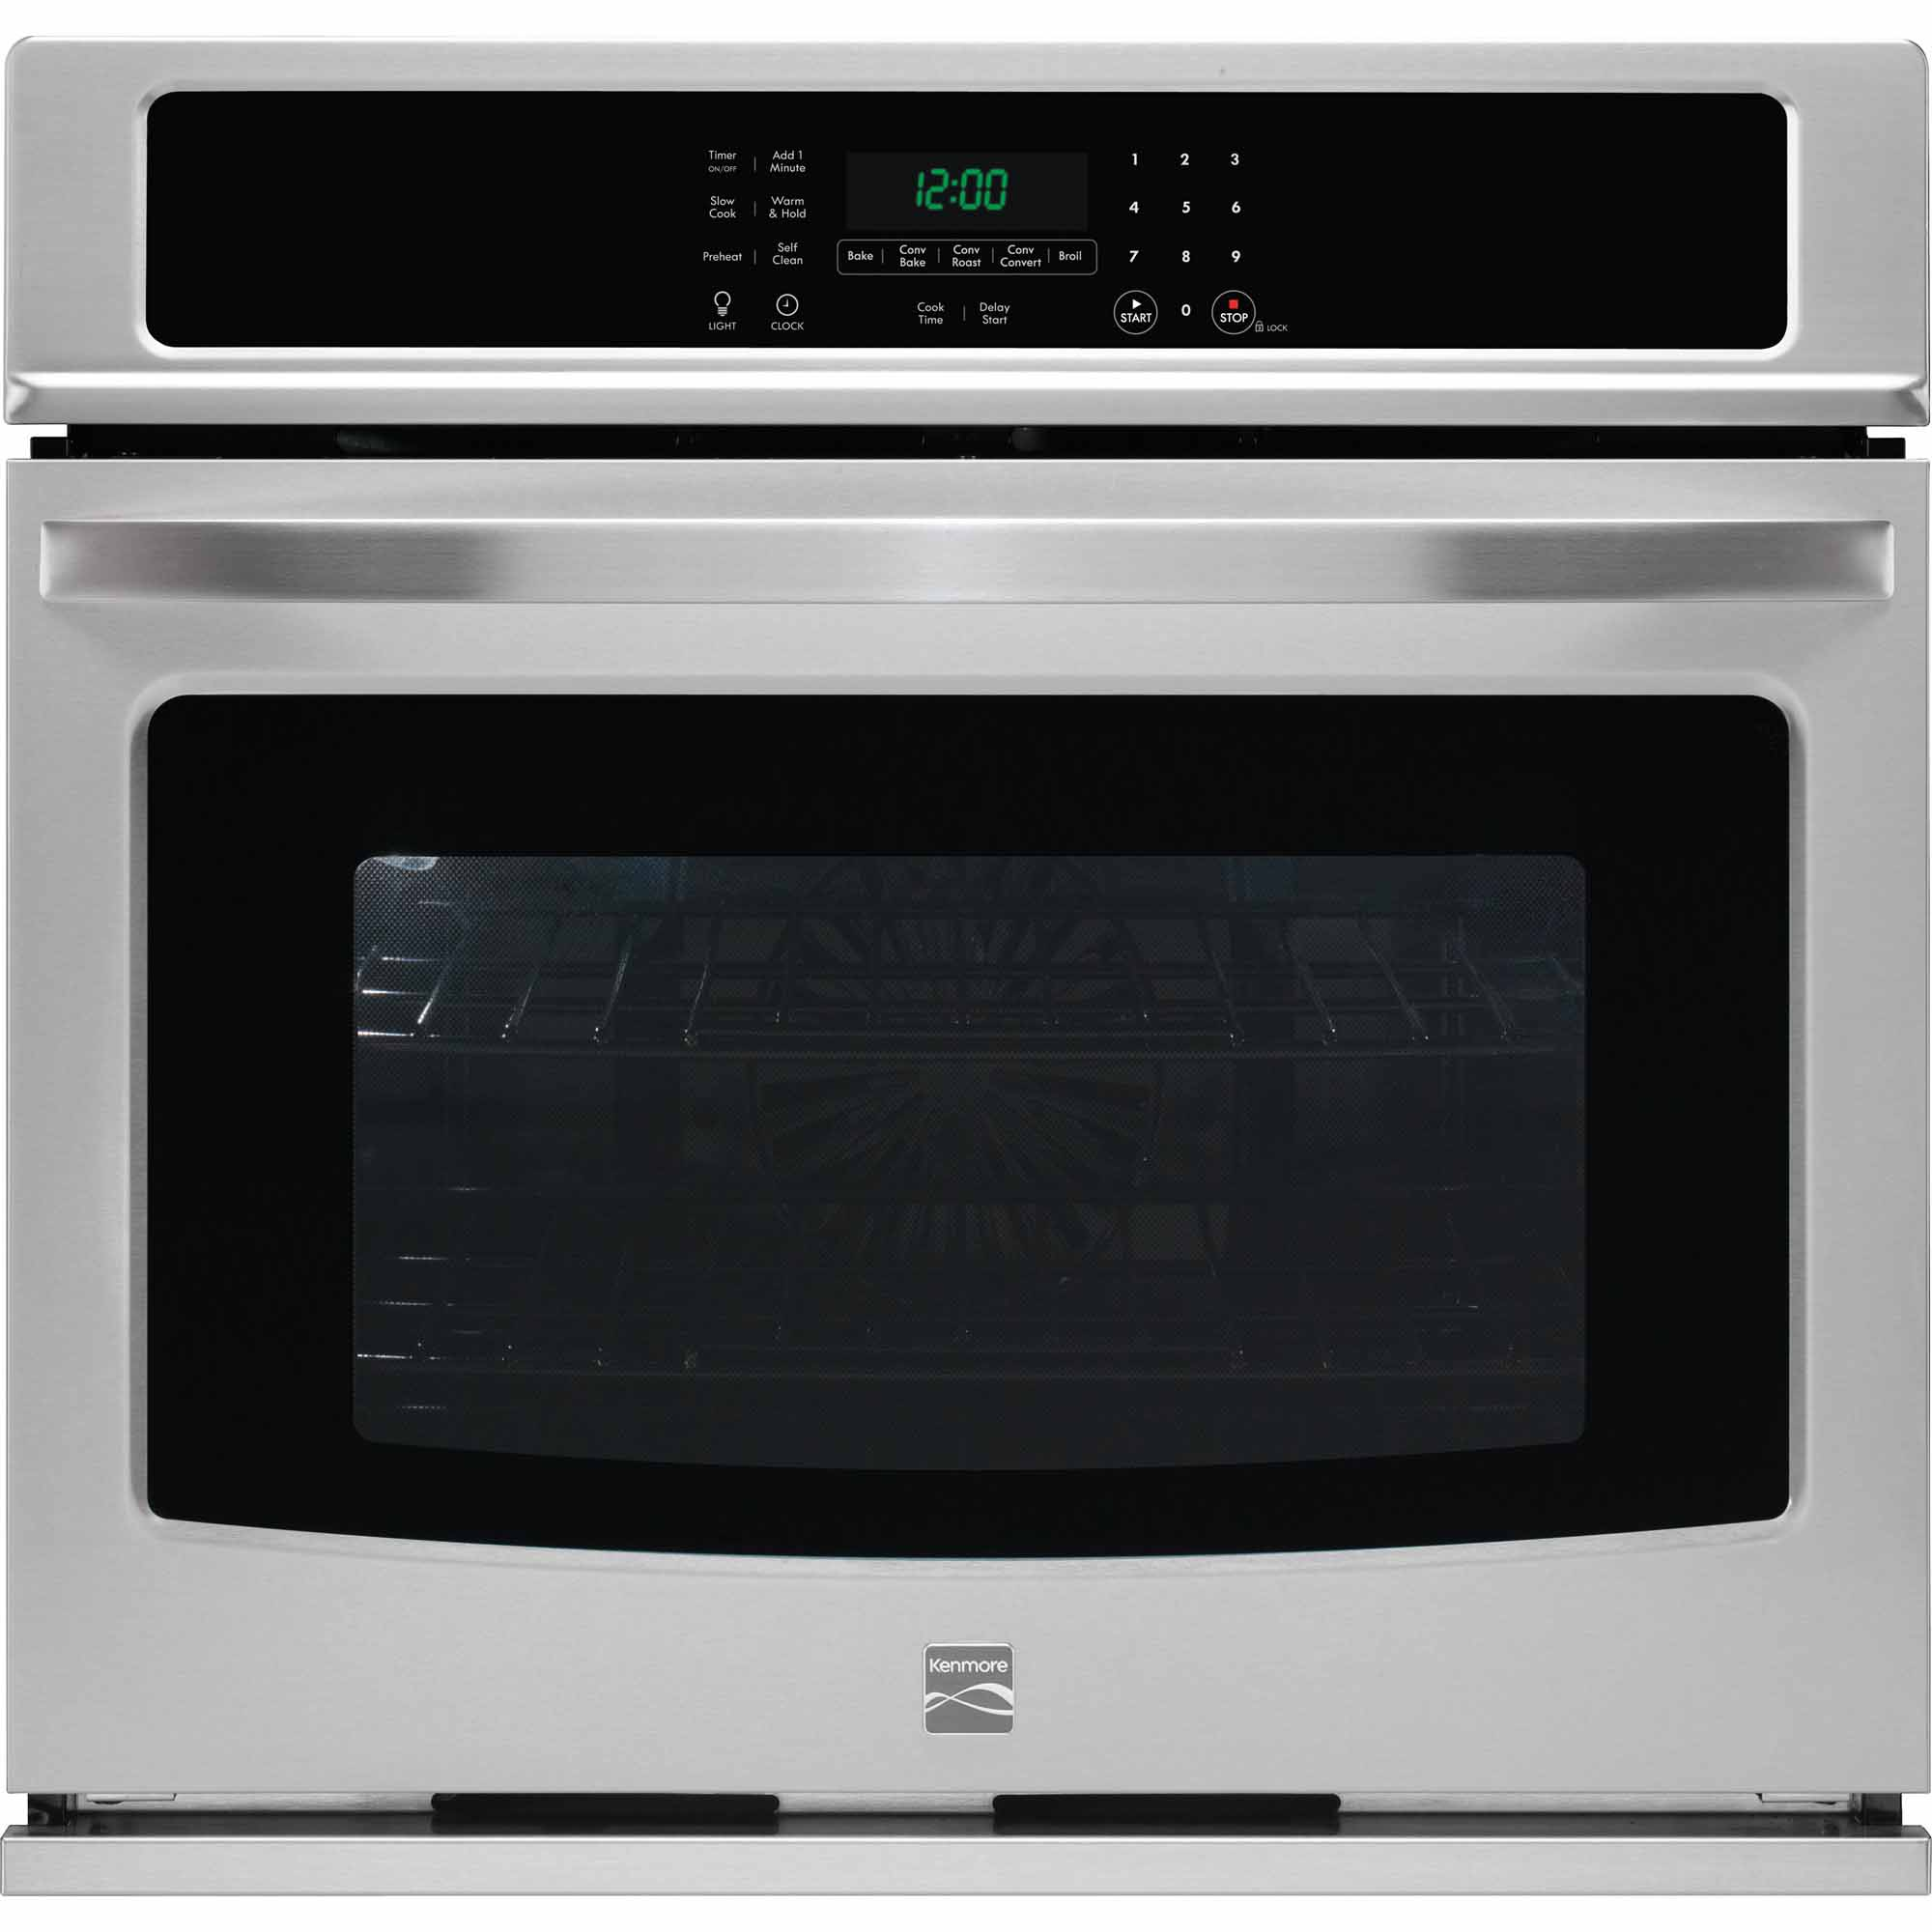 Kenmore 49503 27 Electric Self-Clean Single Wall Oven /w Convection - Stainless Steel